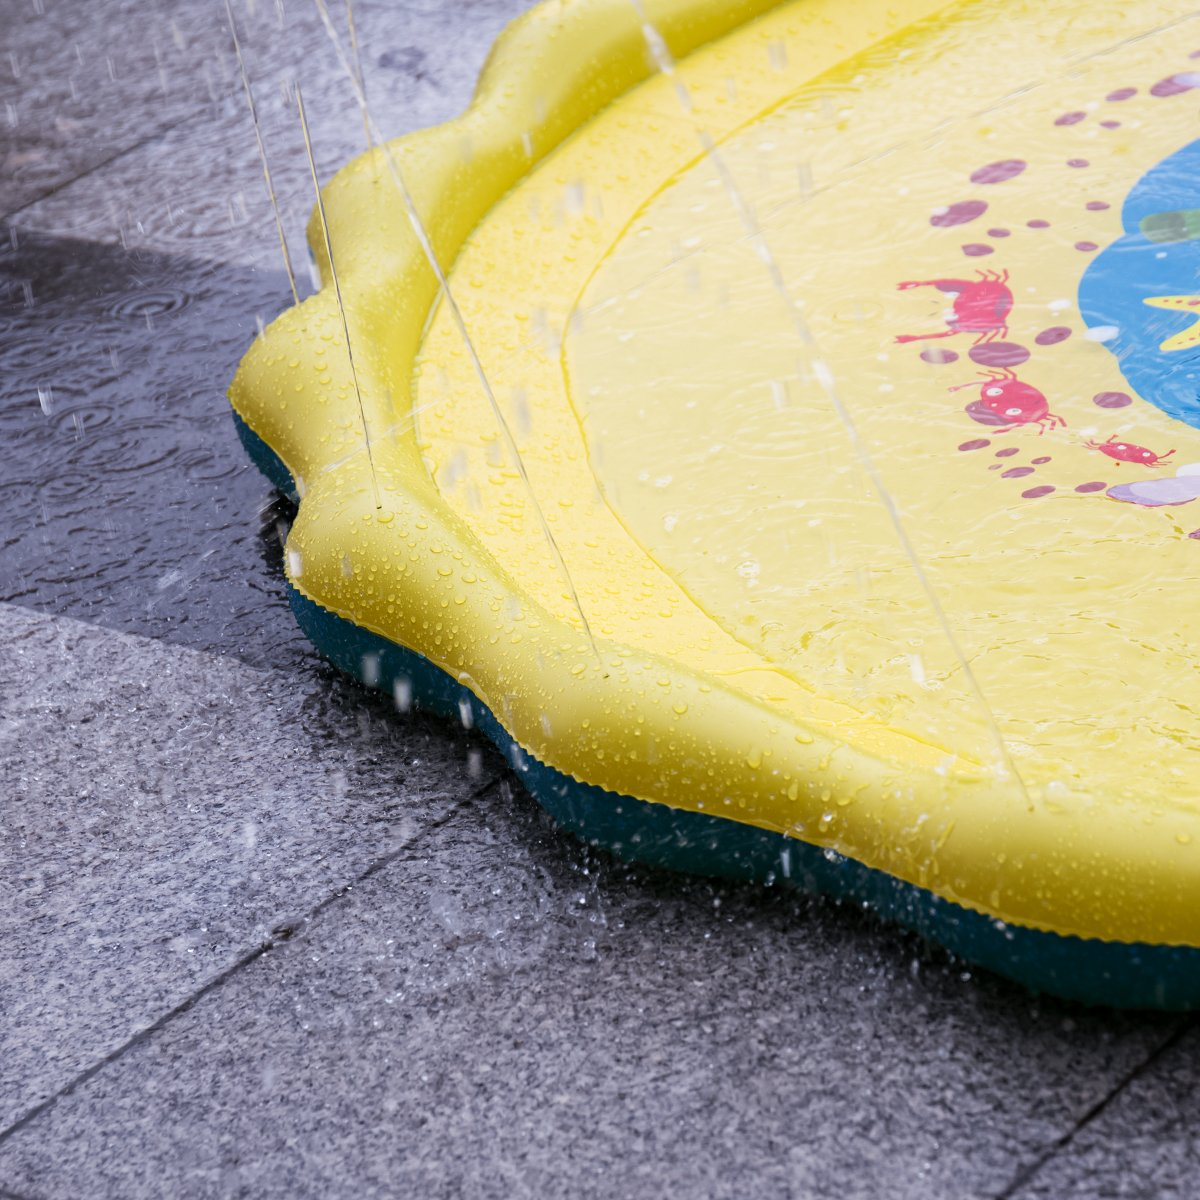 Splash Play Mat, 68in-Diameter Perfect Inflatable Outdoor Sprinkler Pad Summer Fun Backyard Play for Infants Toddlers and Kids by DAPRIL (Image #6)